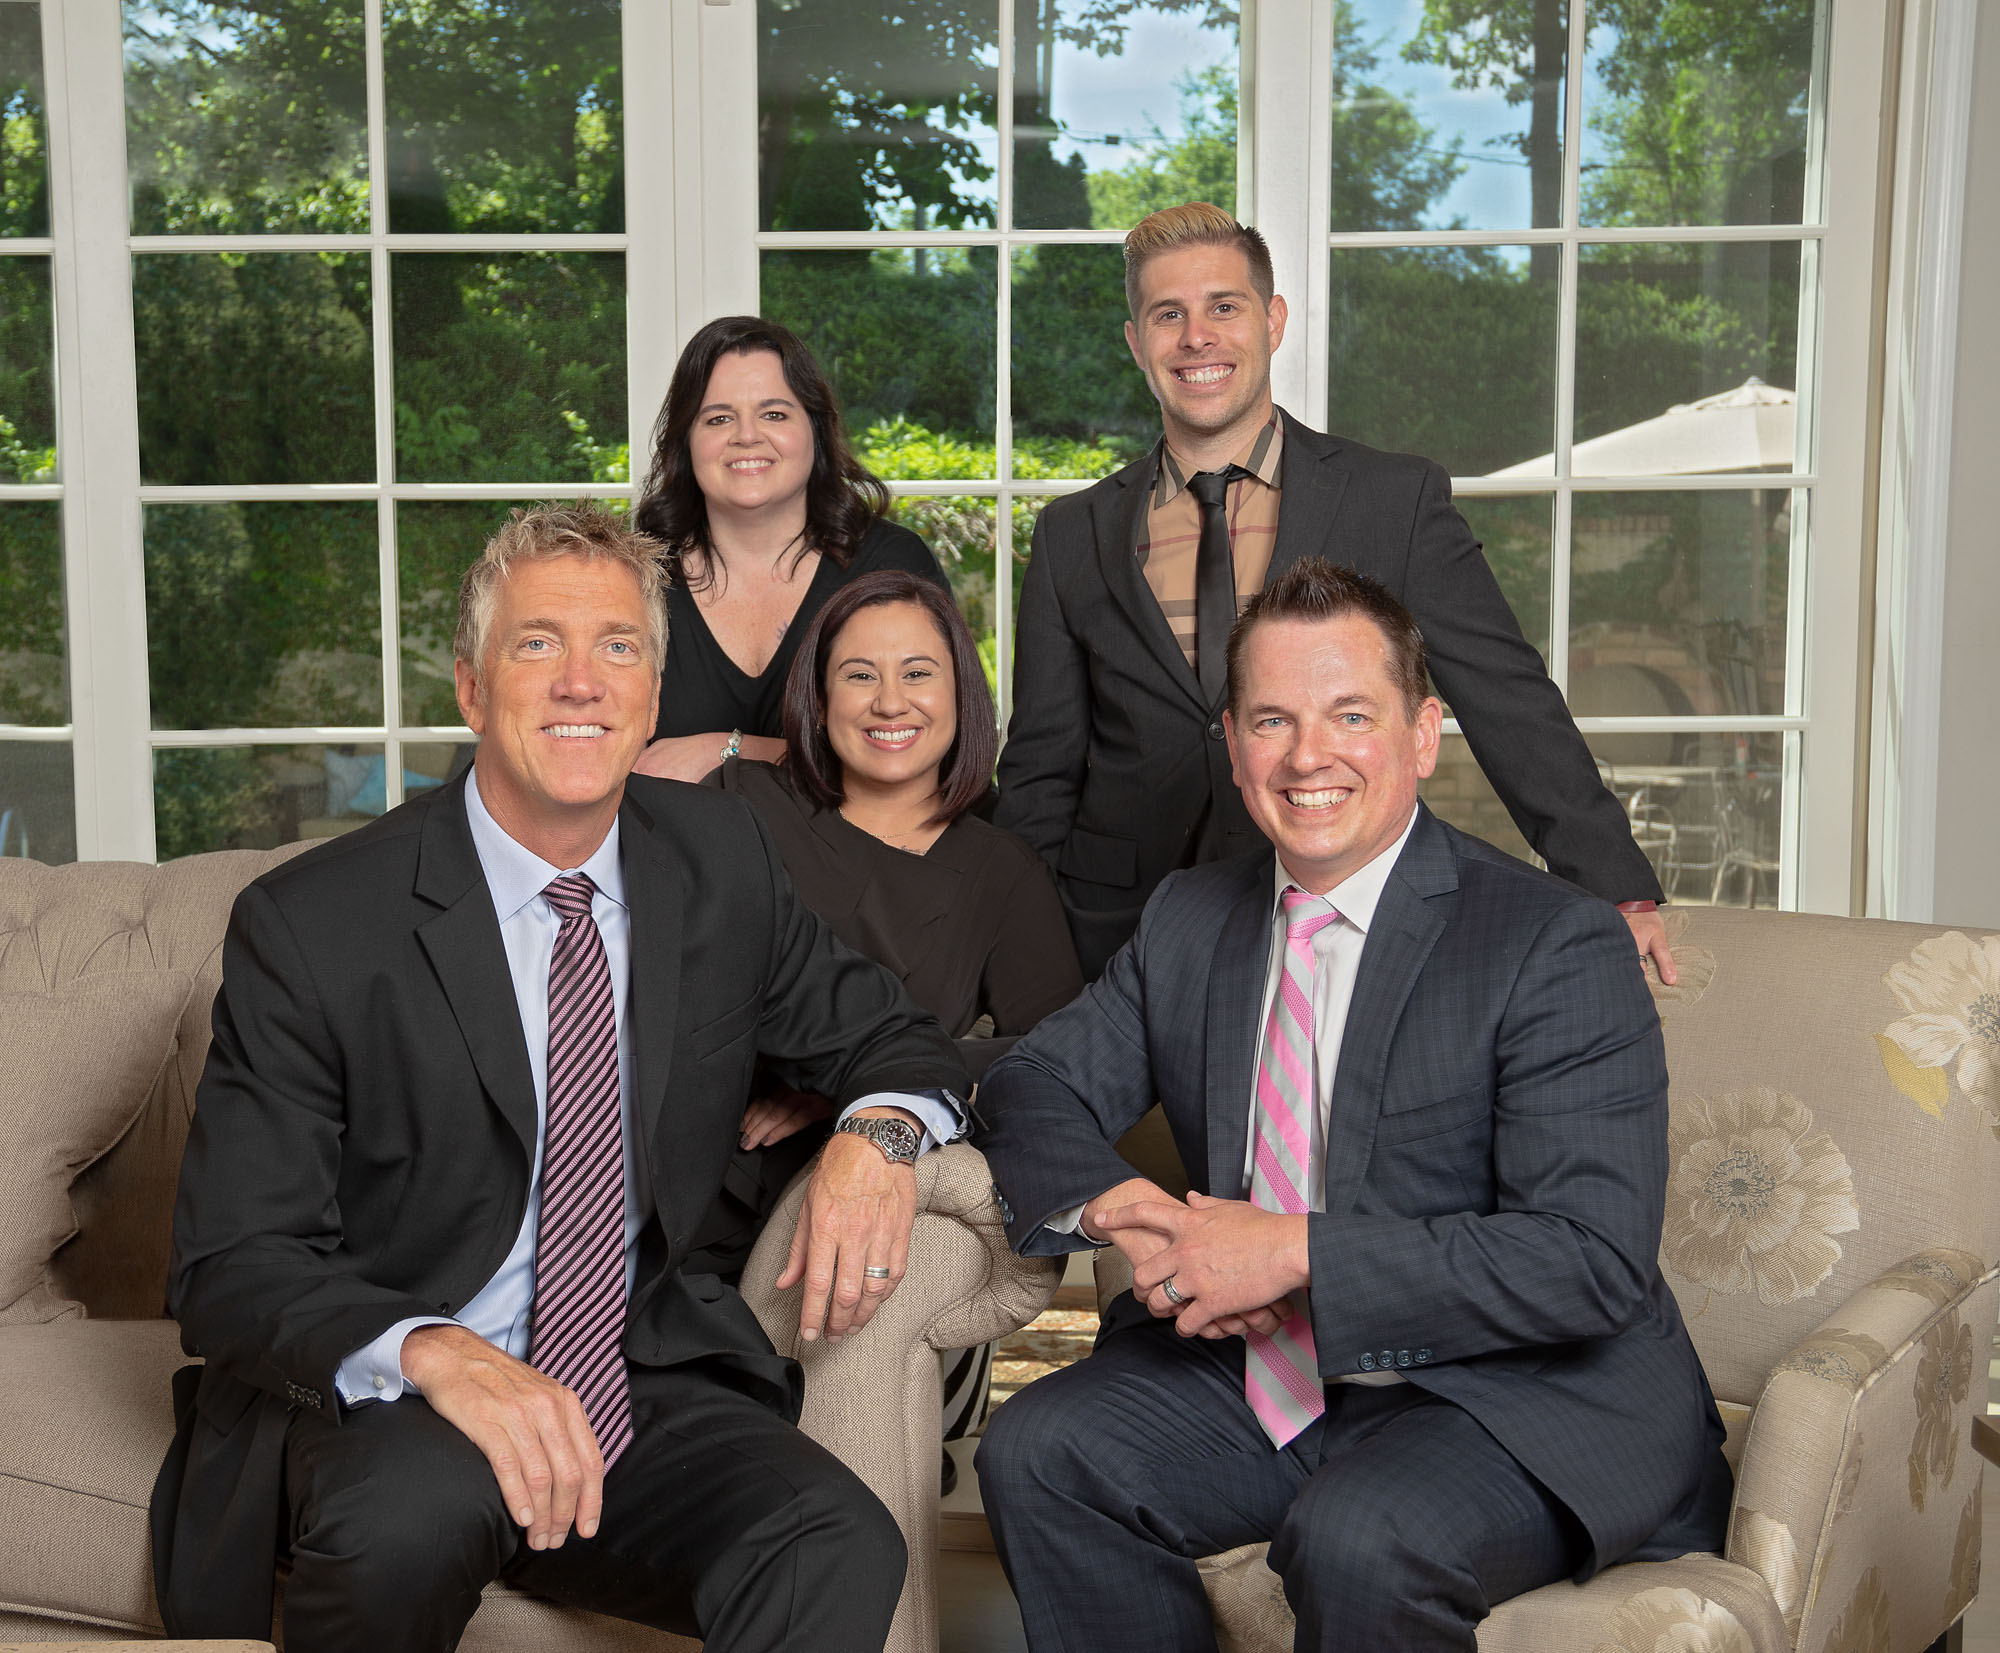 Cary D. Prater Real Estate Group